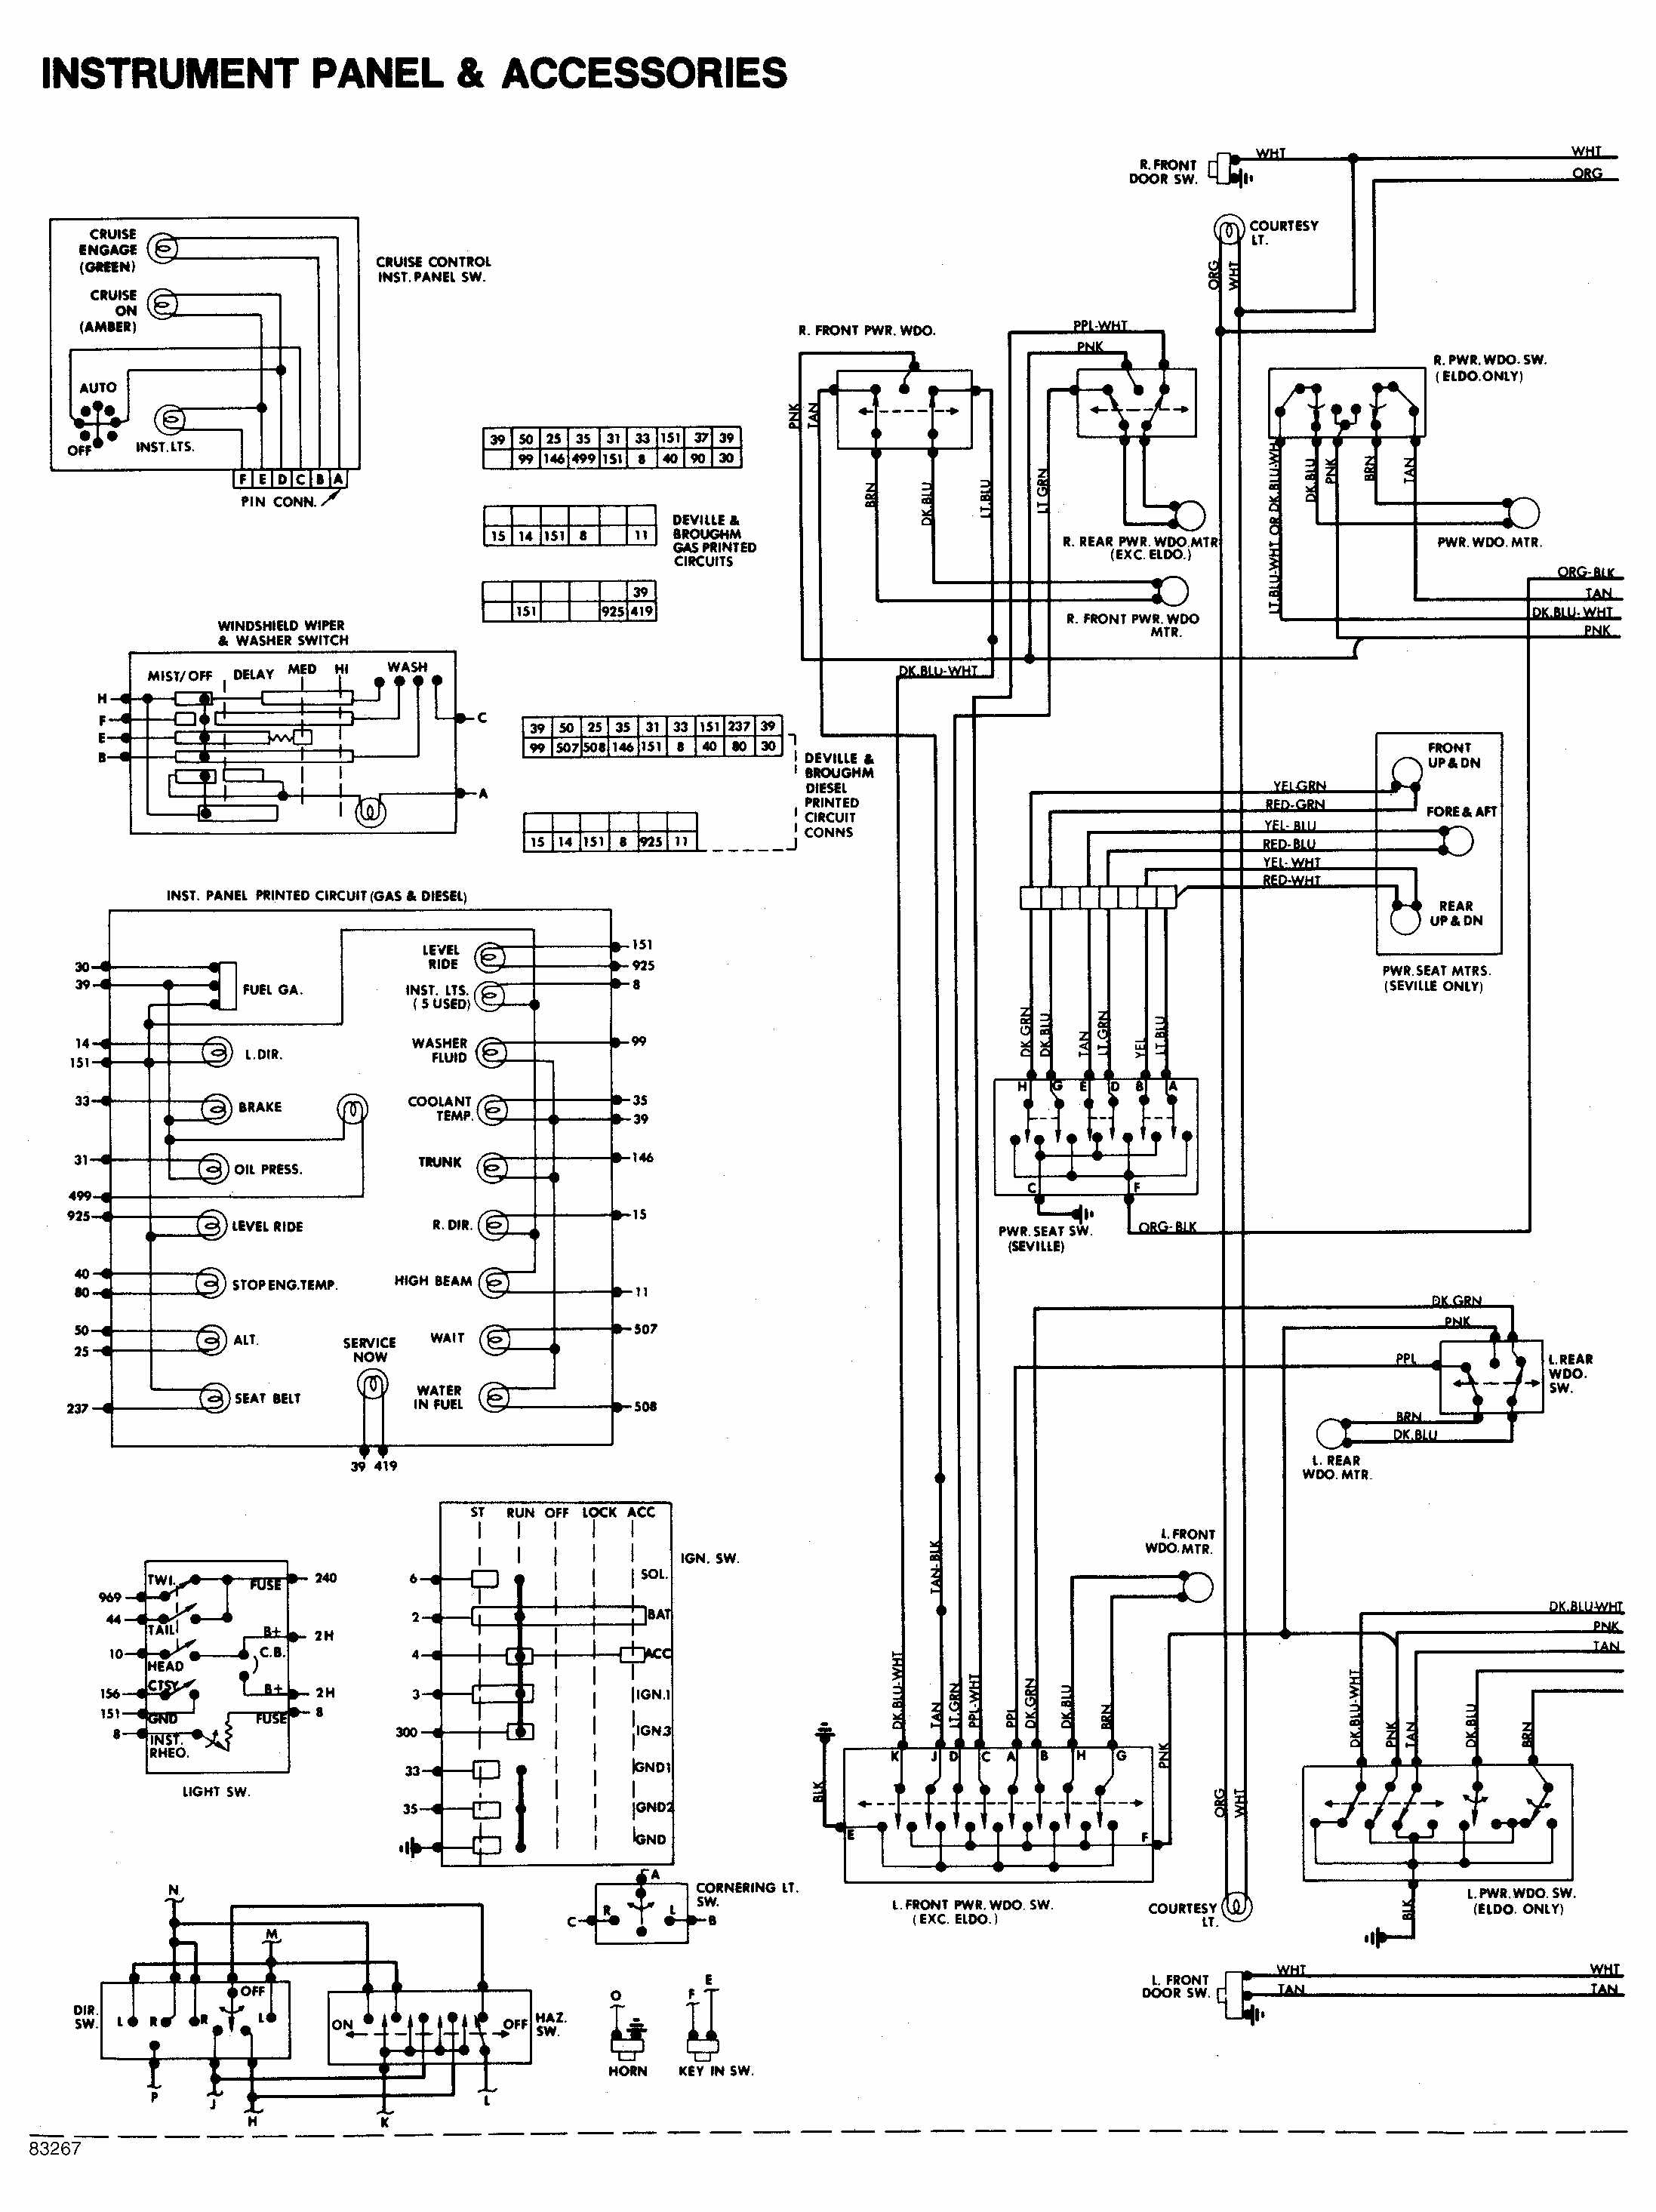 Chevy Diagrams Air Conditioner Wiring Diagram 71 Truck 1984 Cadillac Deville Instrument Panel And Accessories Drawing A